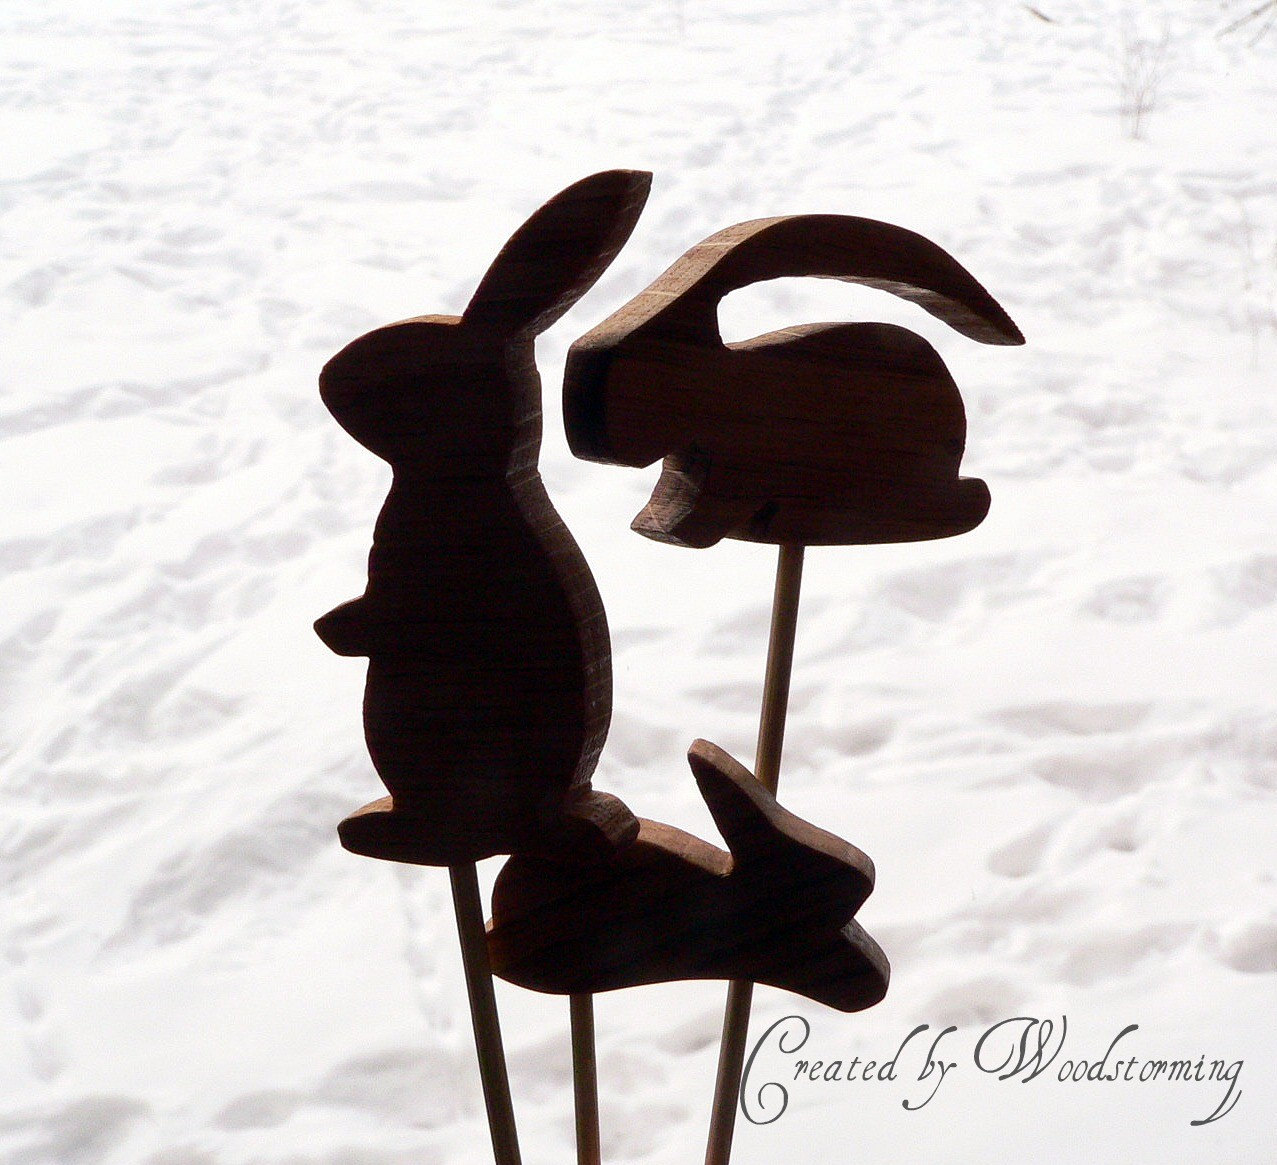 Wooden handmade Easter bunny rabbit flowerpot decoration by Woodstorming from etsy.com